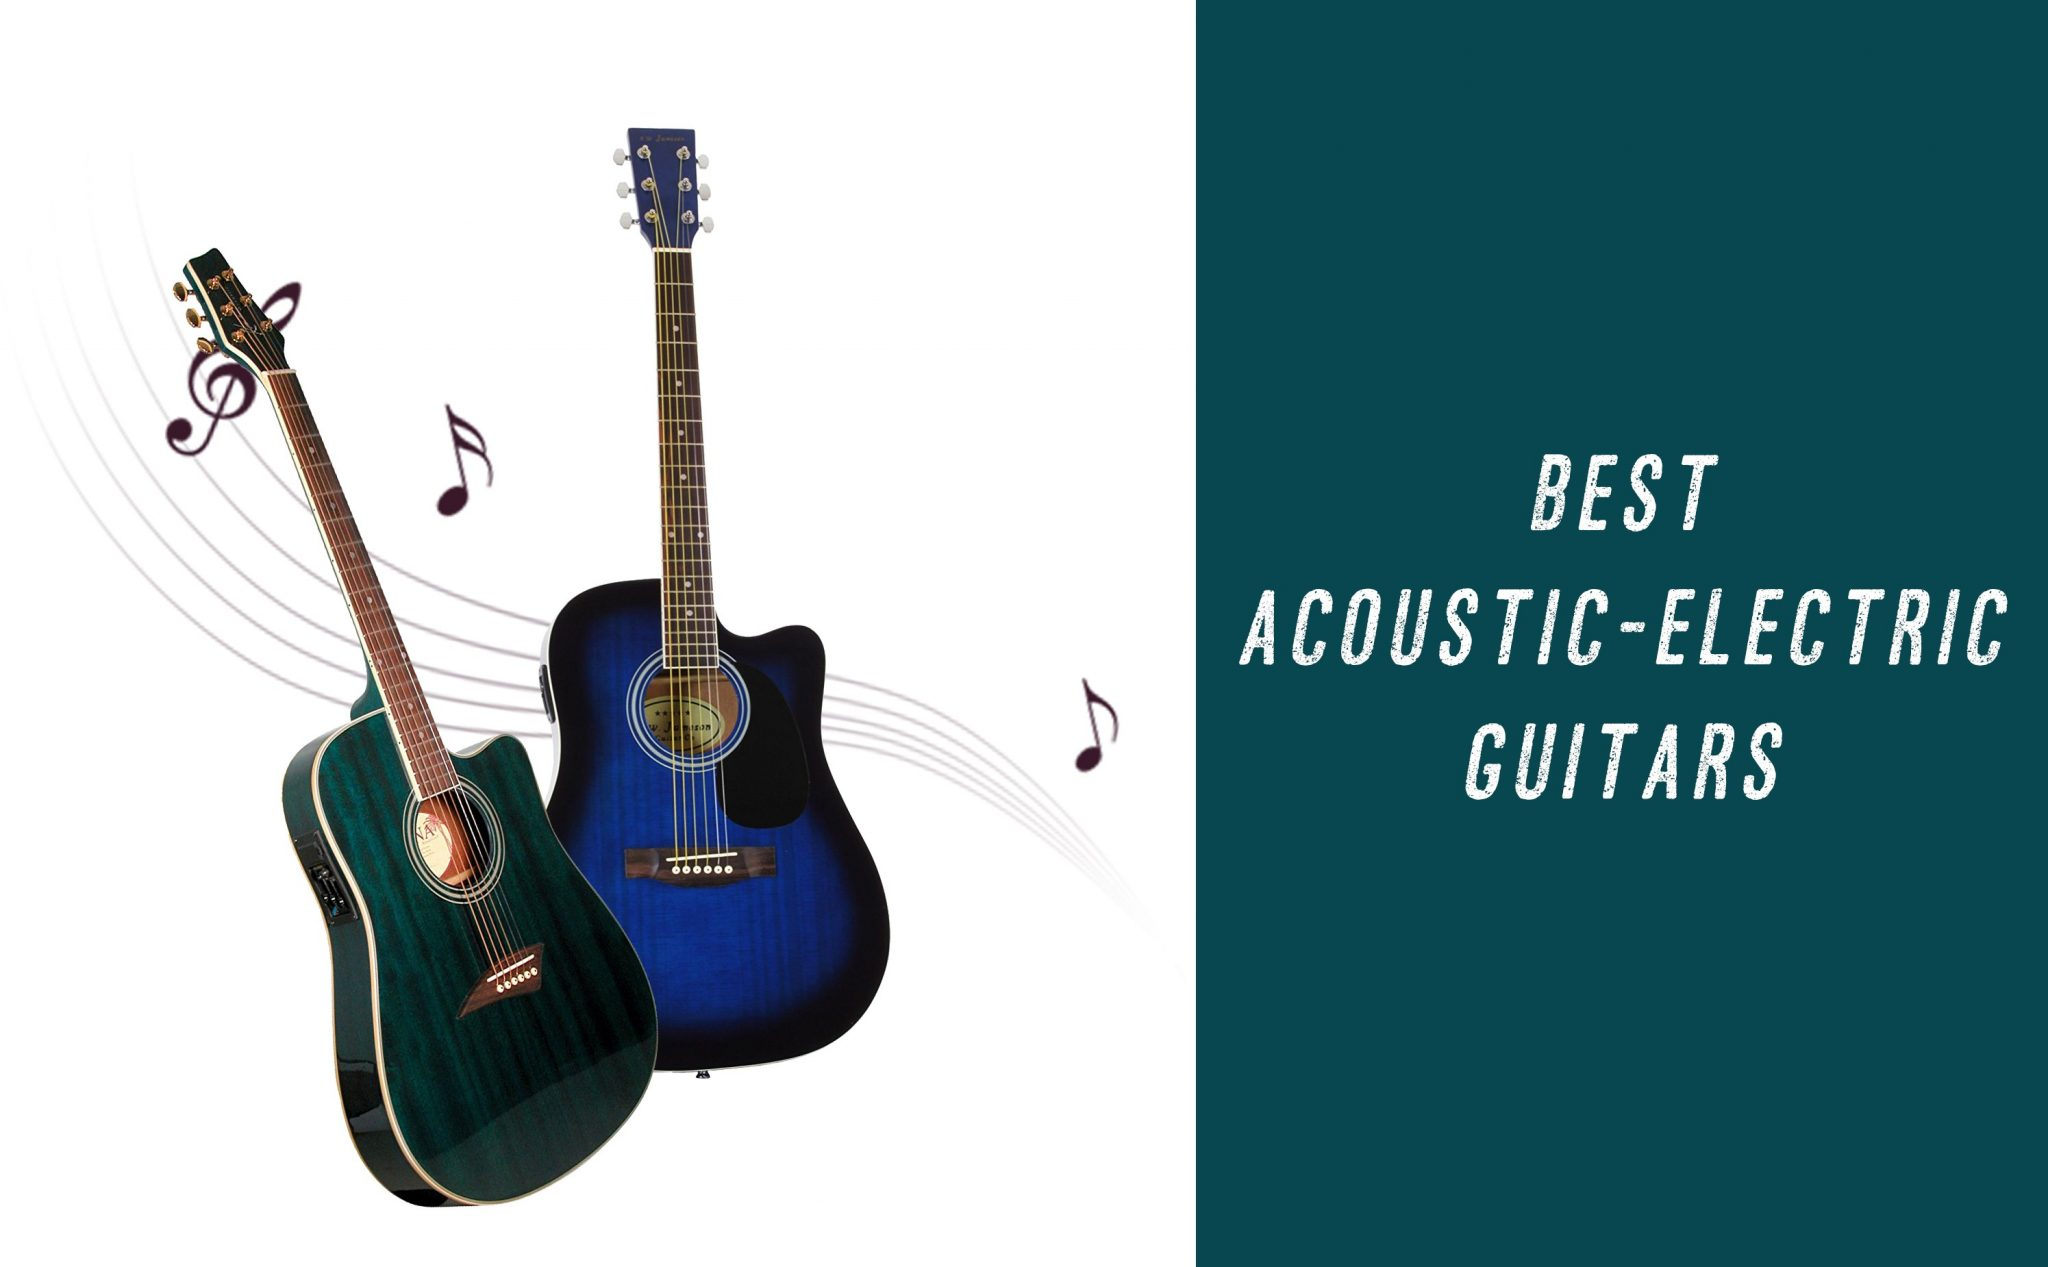 Best Acoustic-electric Guitars